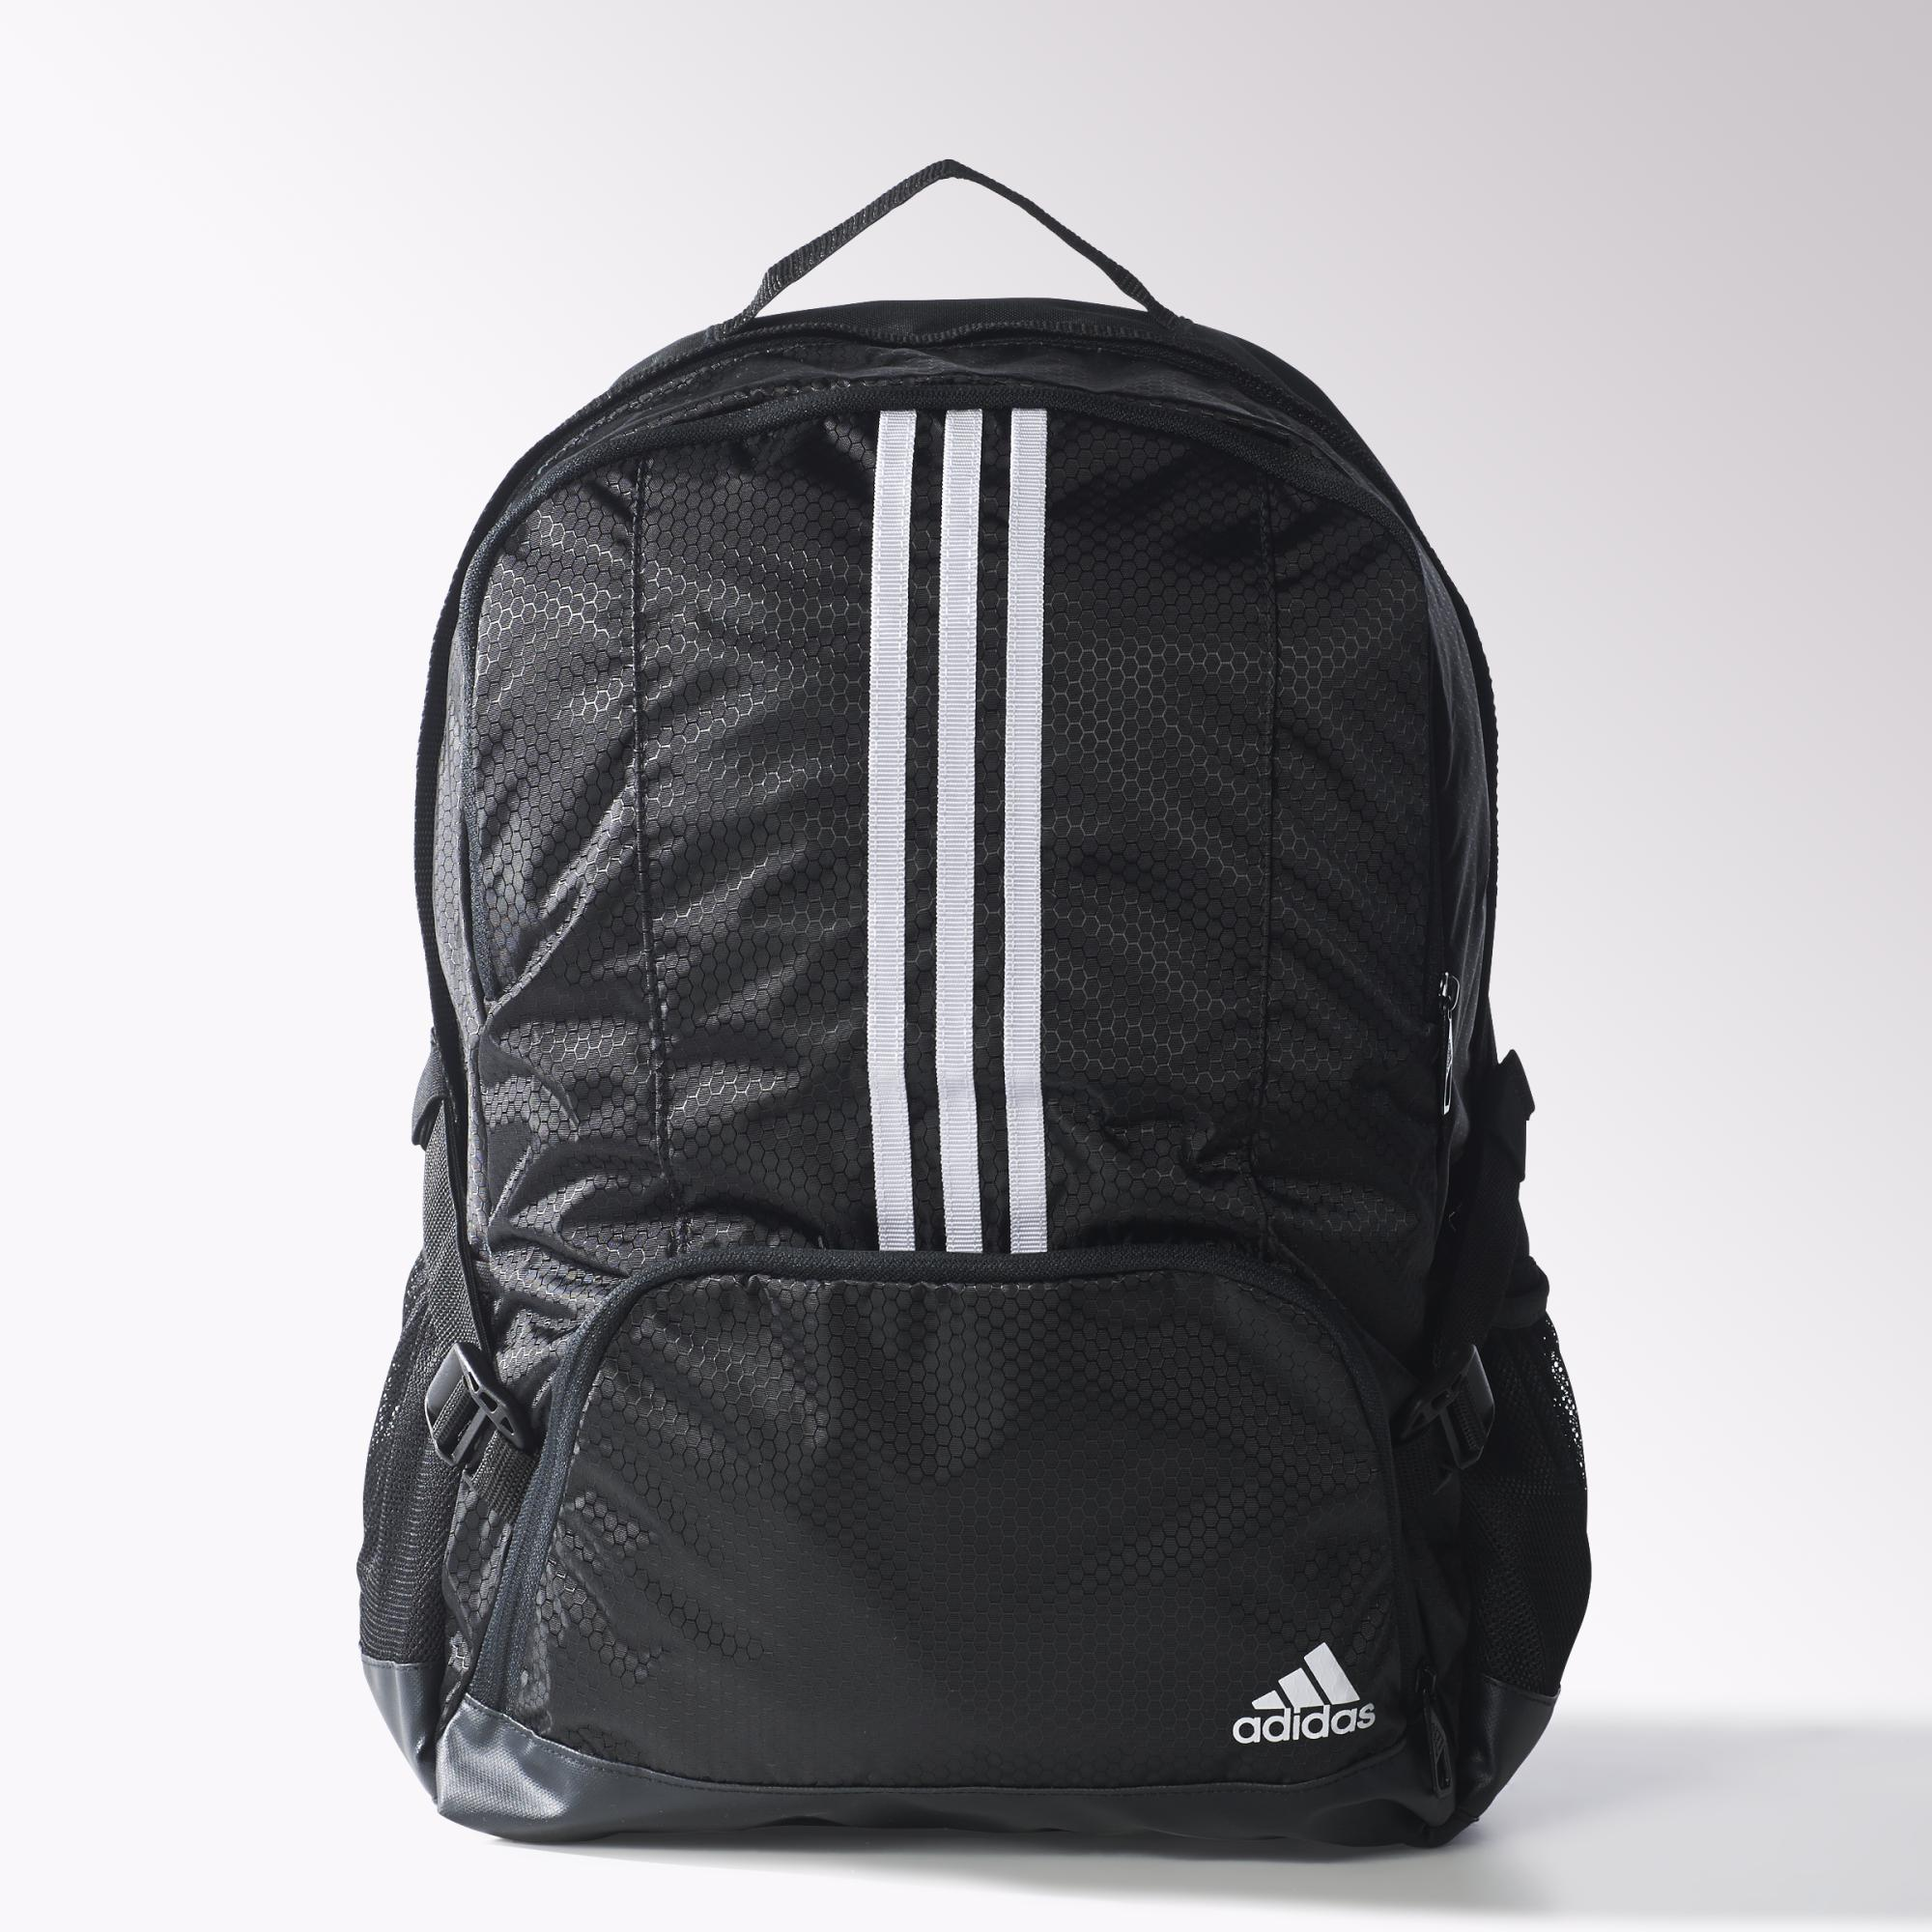 Adidas 3 Stripes Performance Backpack Black White